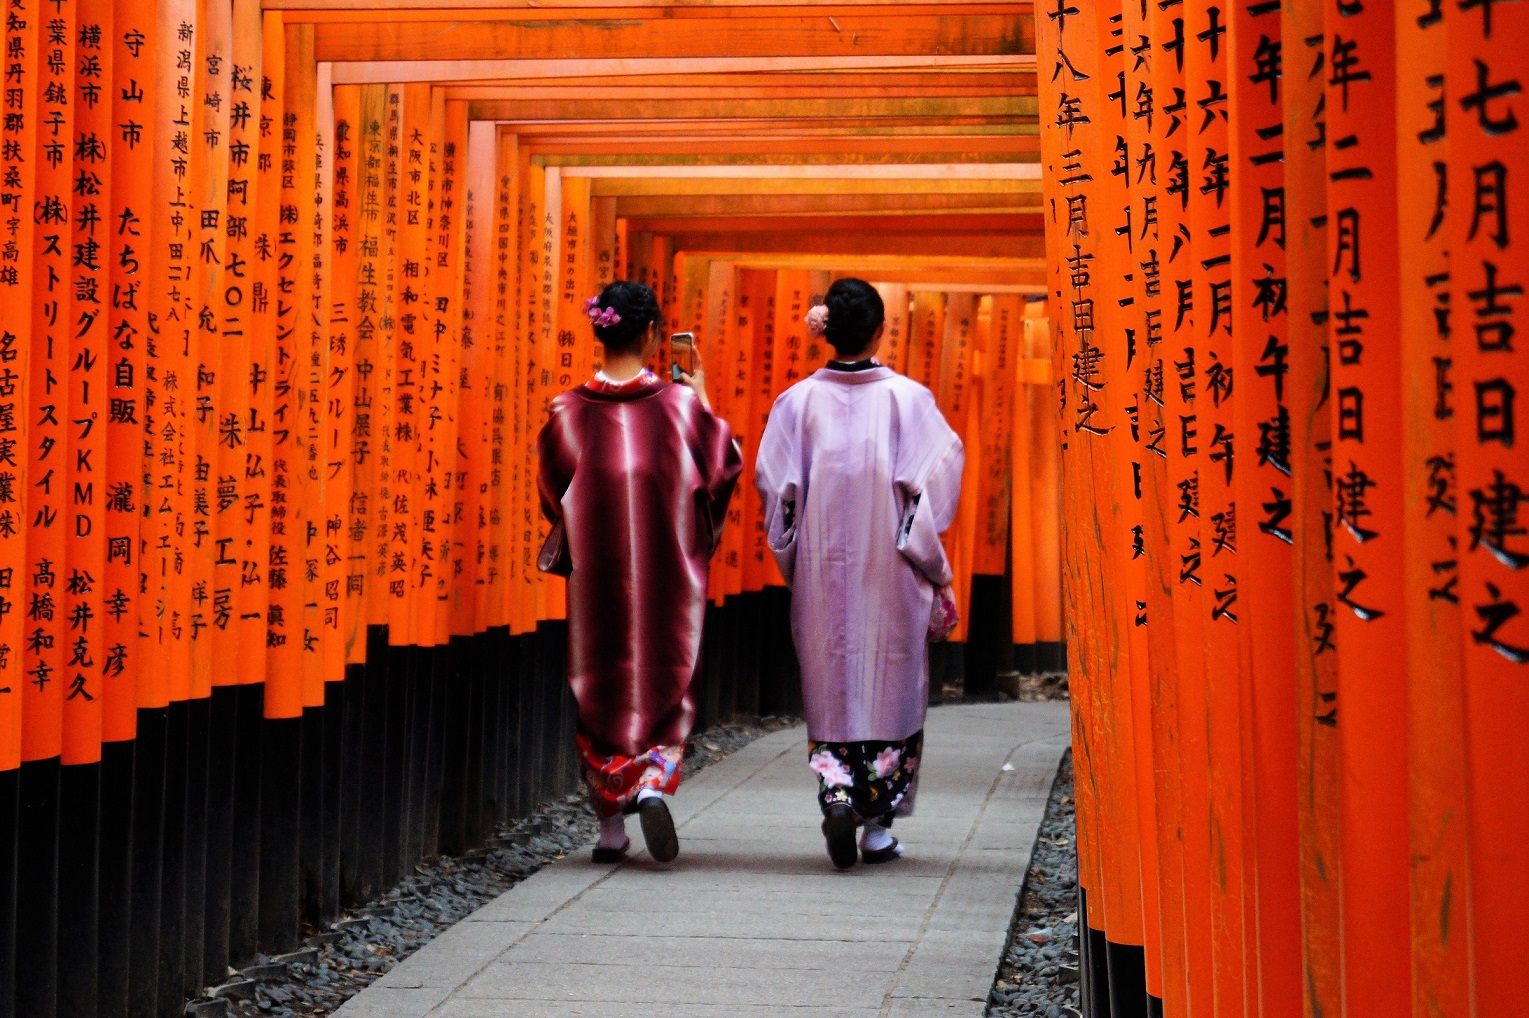 Kioto Fushimi Inari 1 - Kyoto, the 9 most famous places to see in 4 days